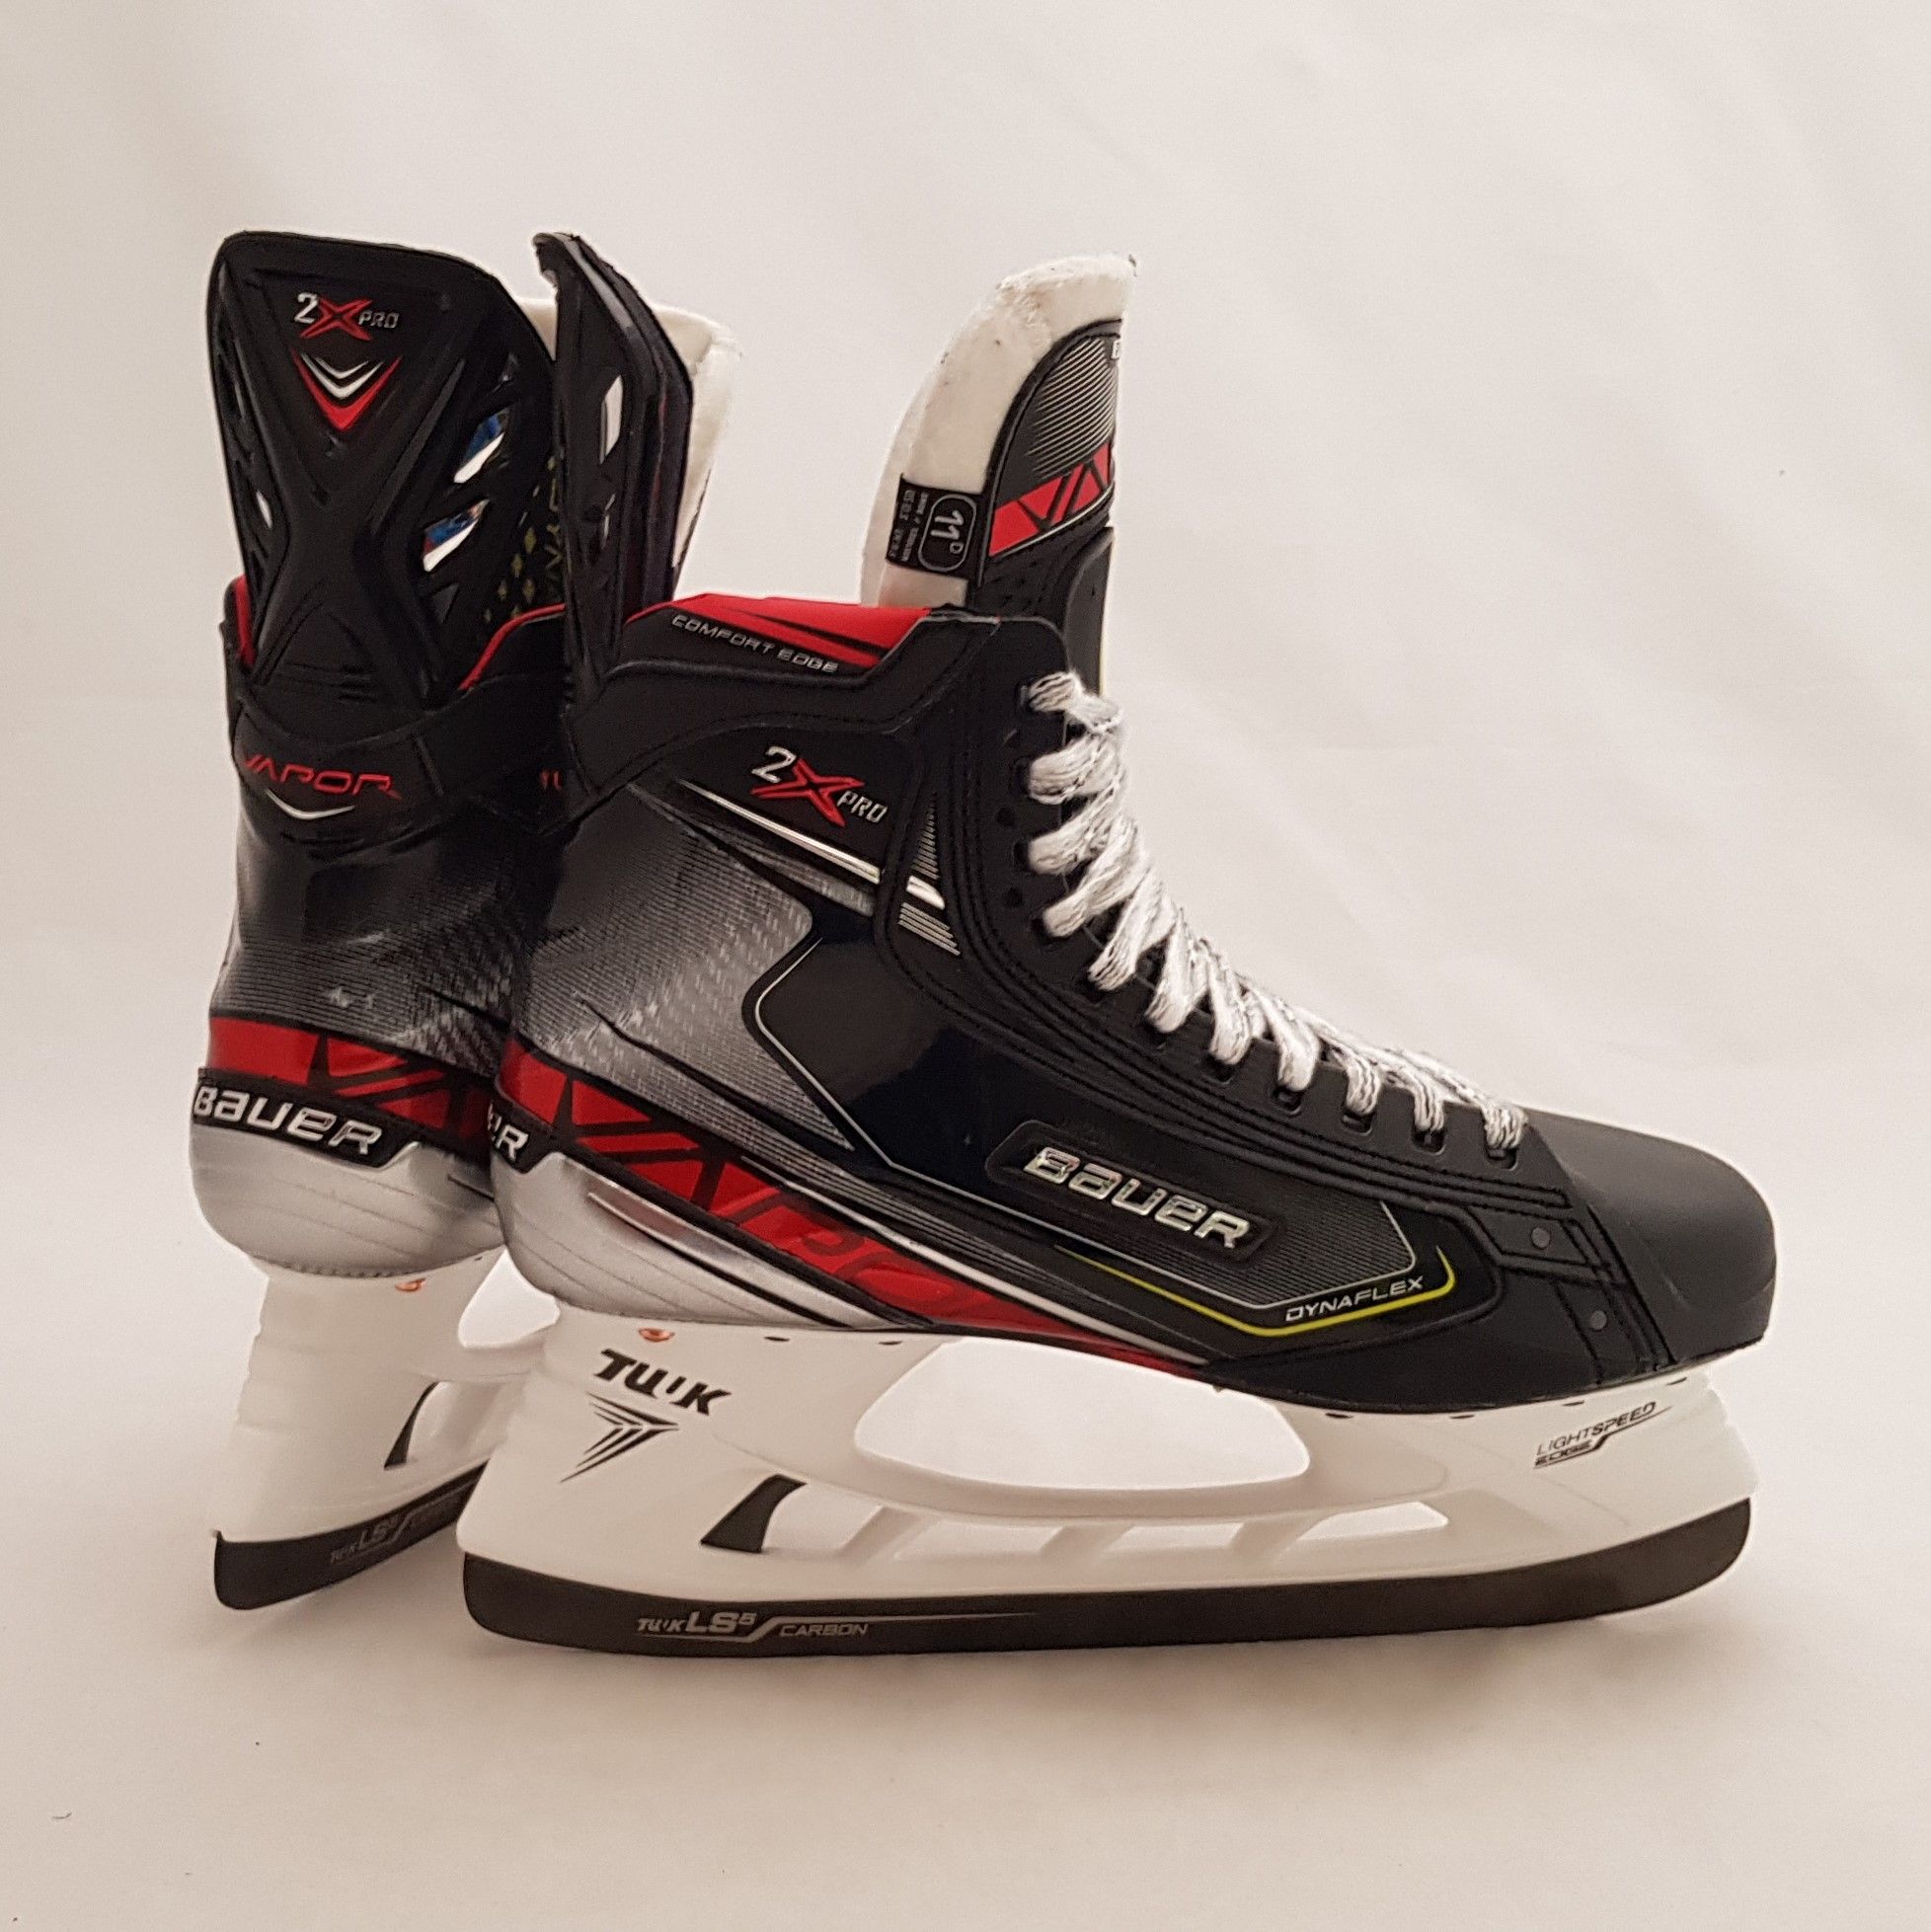 Demo BAUER Vapor 2X Pro S19 Junior Ice Hockey Skates